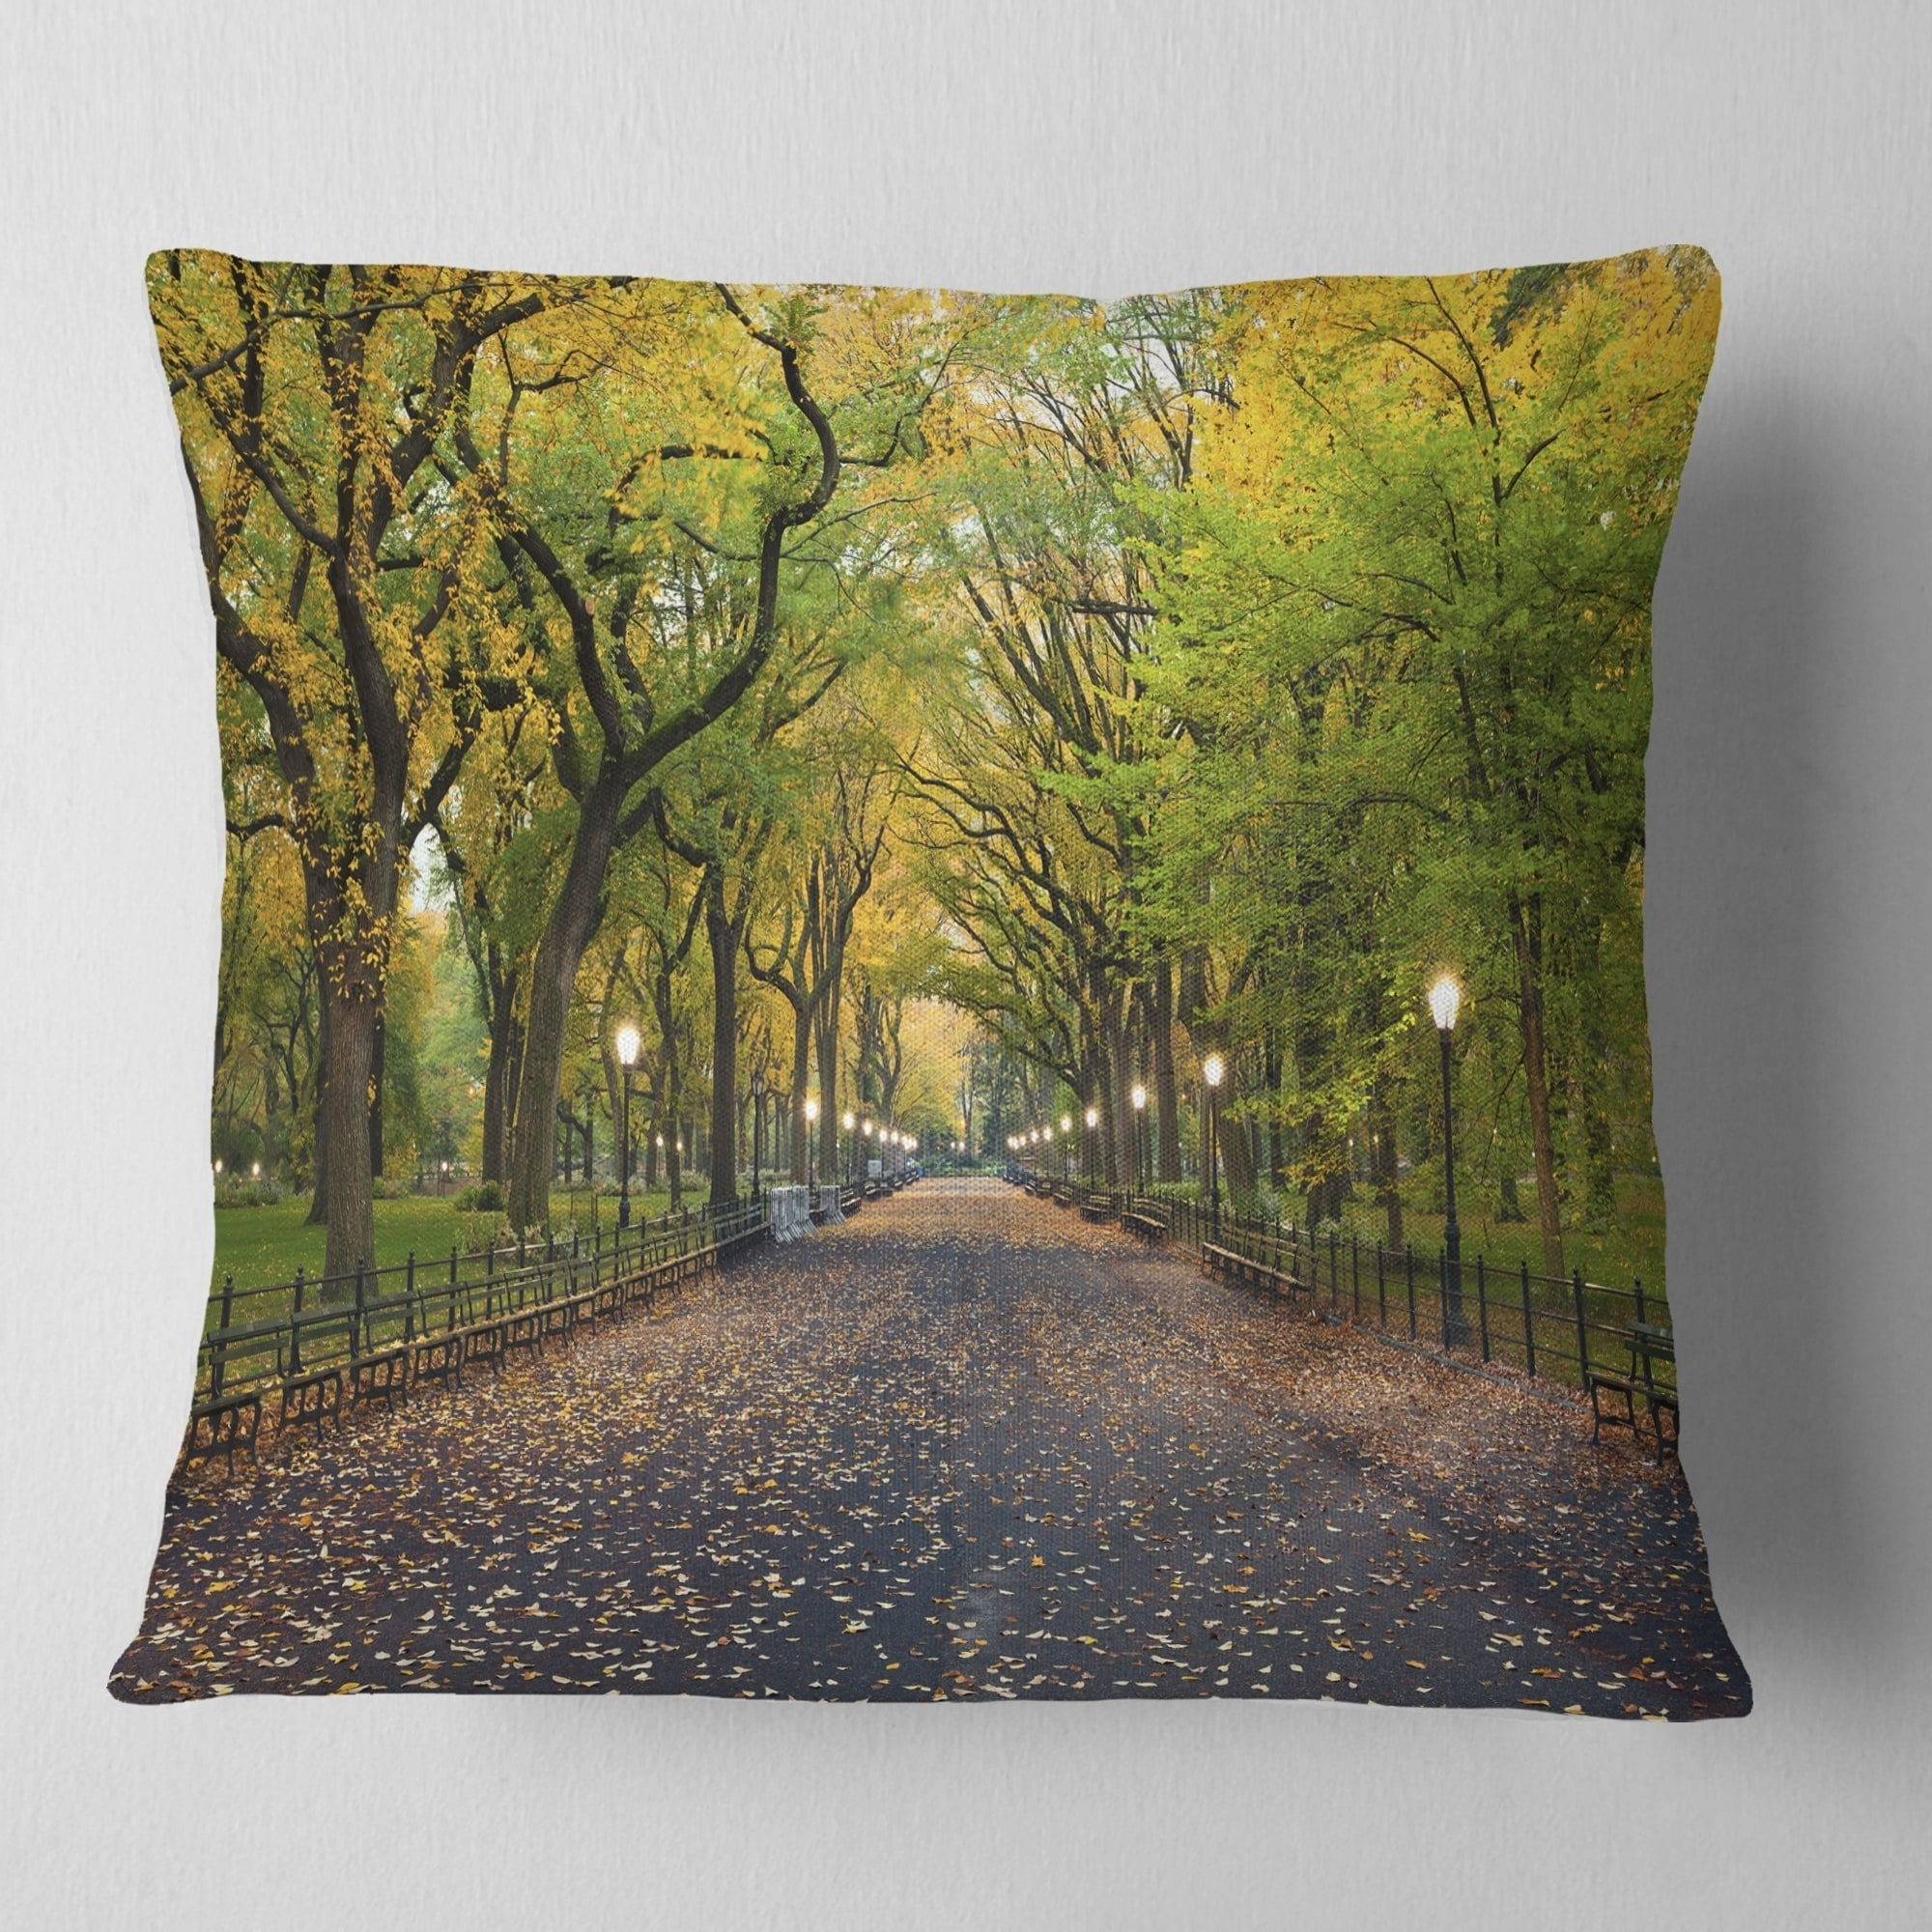 Design Art Designart The Mall Area In Central Park Landscape Printed Throw Pillow Walmart Com Walmart Com